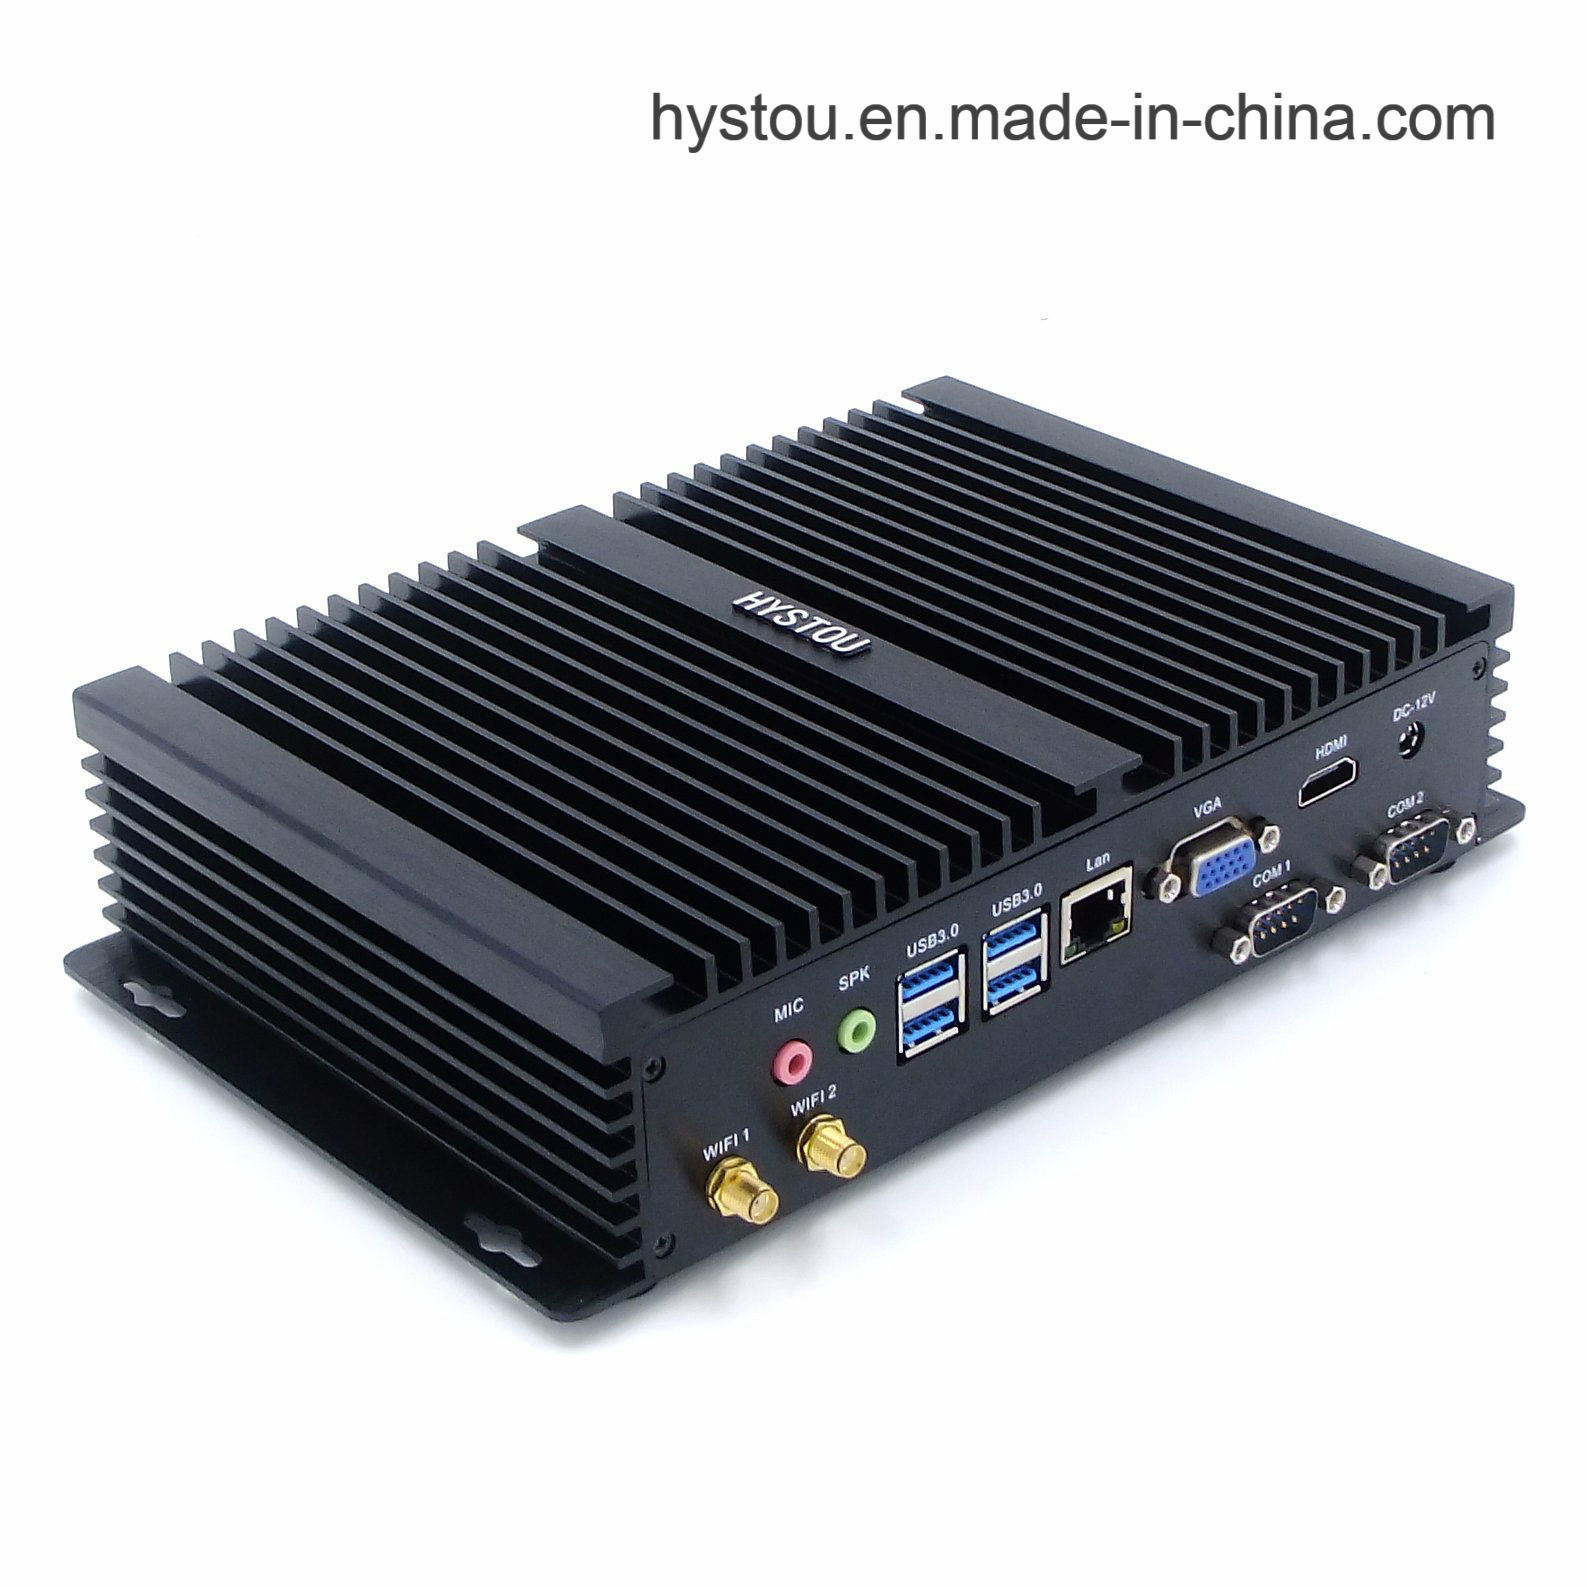 Fanless Mini PC I5 Industrial Computer with Dual Display Windows 10 PRO